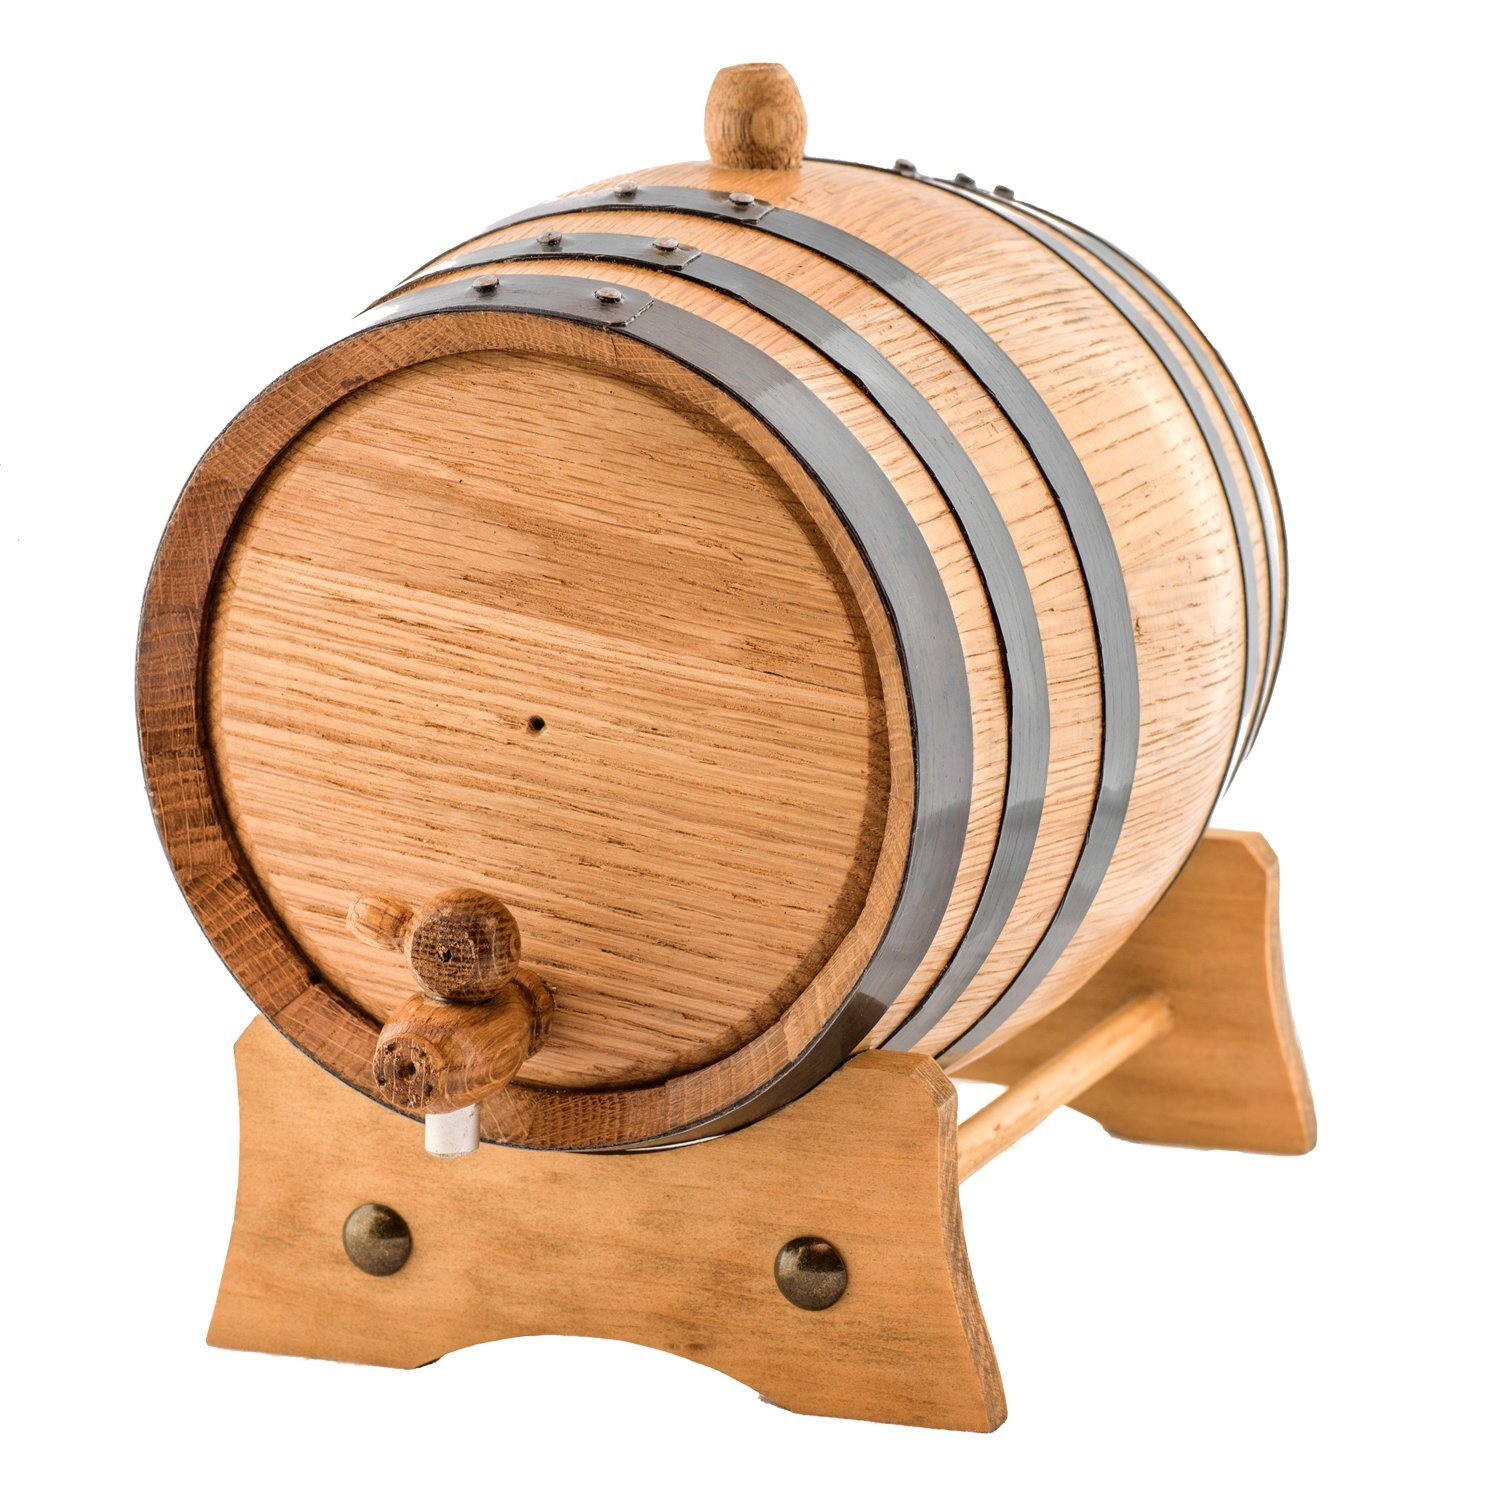 2 Liters American Oak Aging Whiskey Barrel   Handcrafted using American White Oak   Age your own Whiskey, Beer, Wine, Bourbon, Tequila, Hot Sauce & More by Sofia's Findings